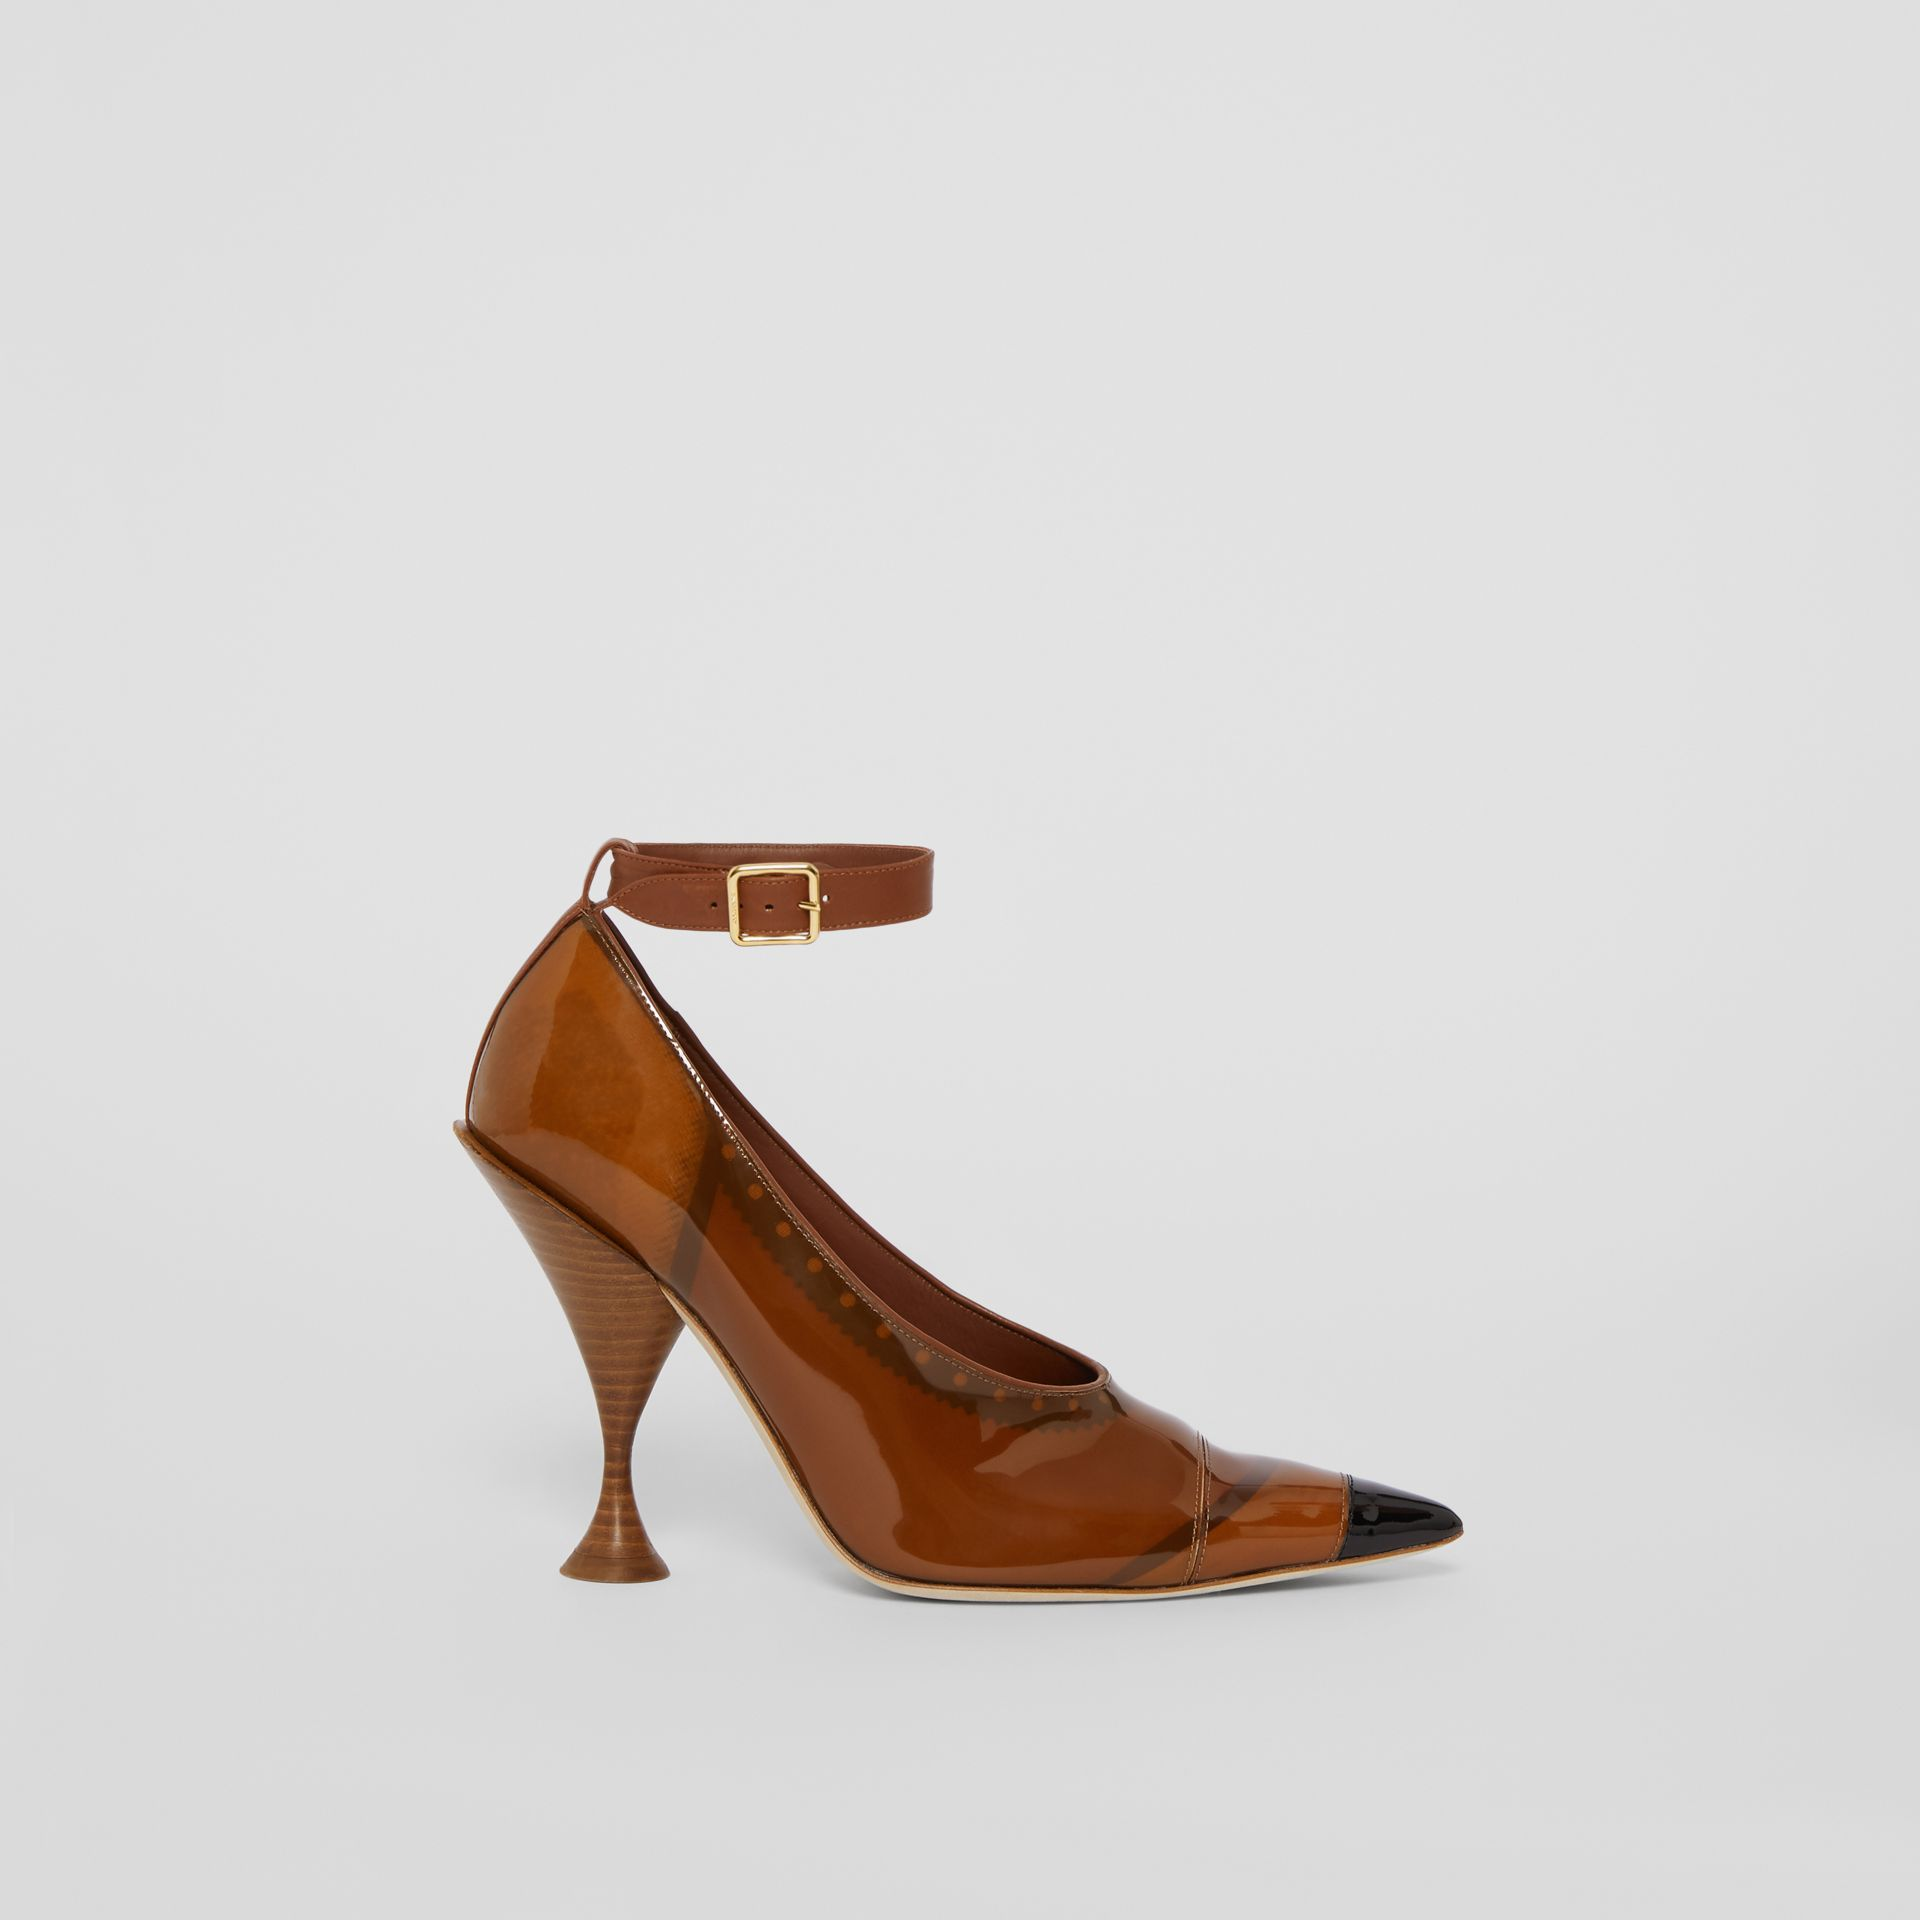 Vinyl and Leather Point-toe Pumps in Malt Brown - Women | Burberry United States - gallery image 5